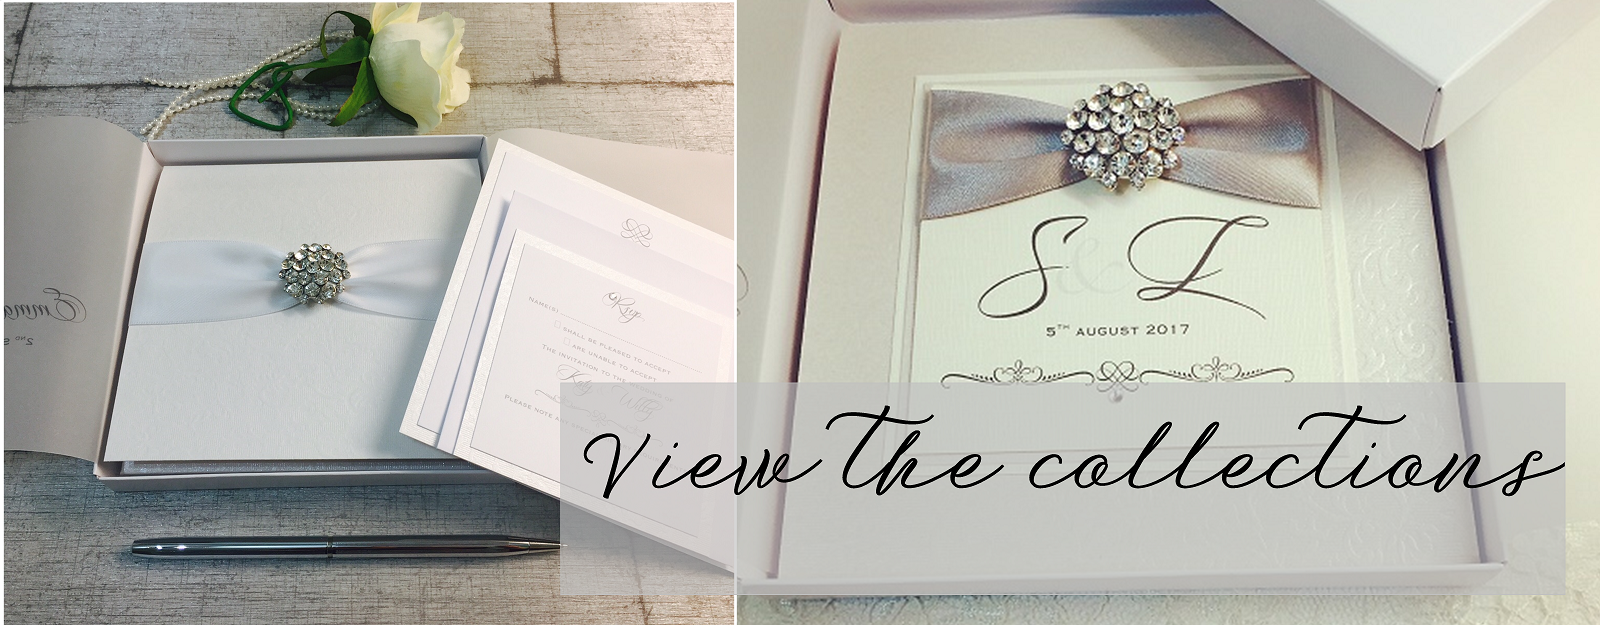 luxury boxed wedding invitations by amor designs - Luxury Wedding Invitations